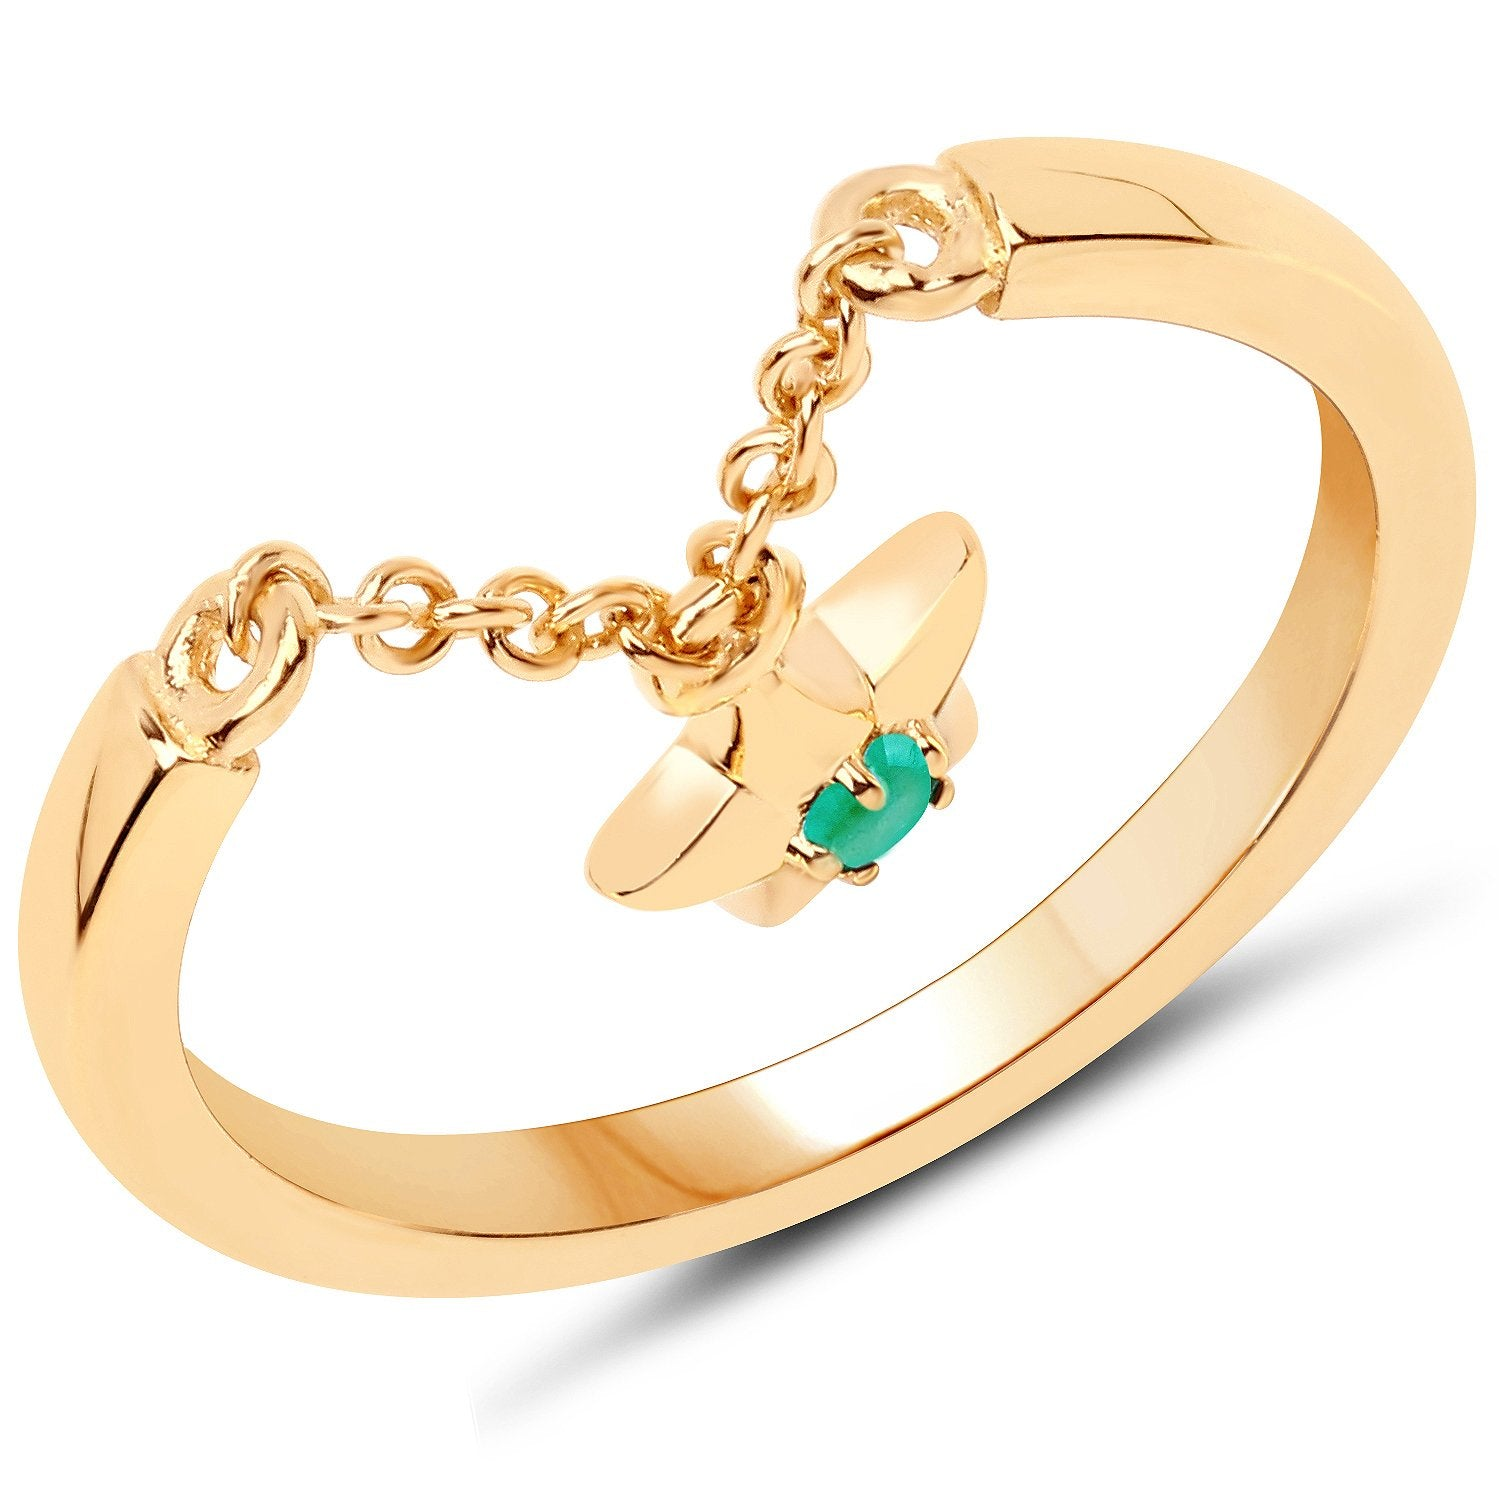 LoveHuang 0.03 Carats Genuine Emerald Dangling Star Ring Solid .925 Sterling Silver With 18KT Yellow Gold Plating